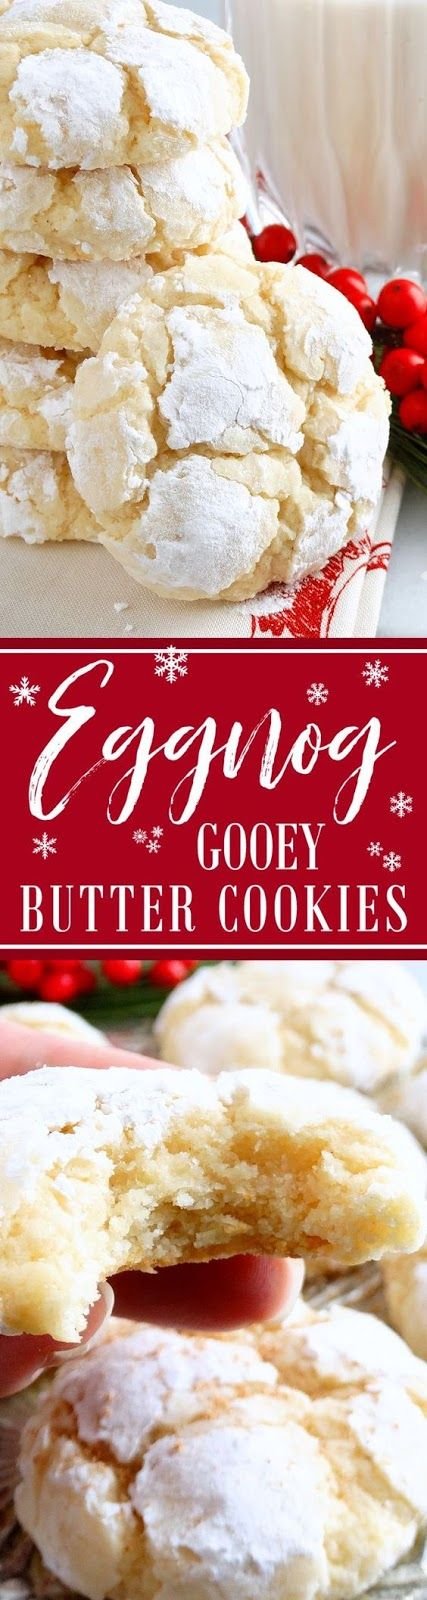 Melt-in-your-mouth Eggnog Gooey Butter Cookies